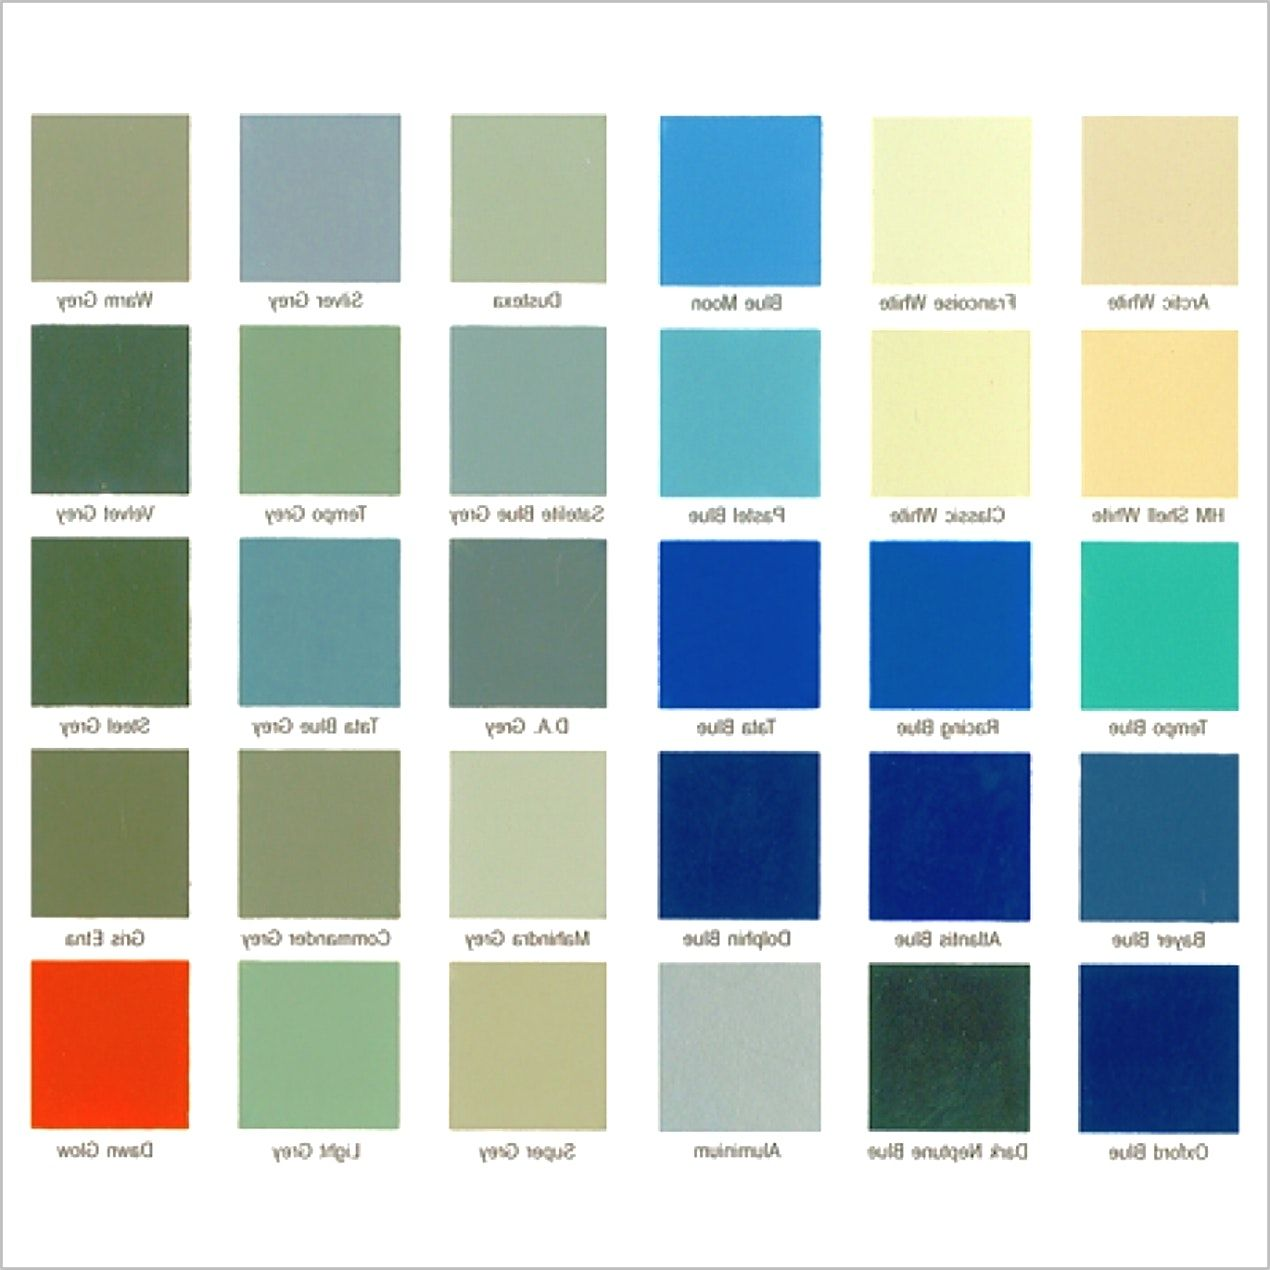 Asian Paints Shades For Interior Asian Paints Colours Asian Paints Colour Shades Colour Shade Card